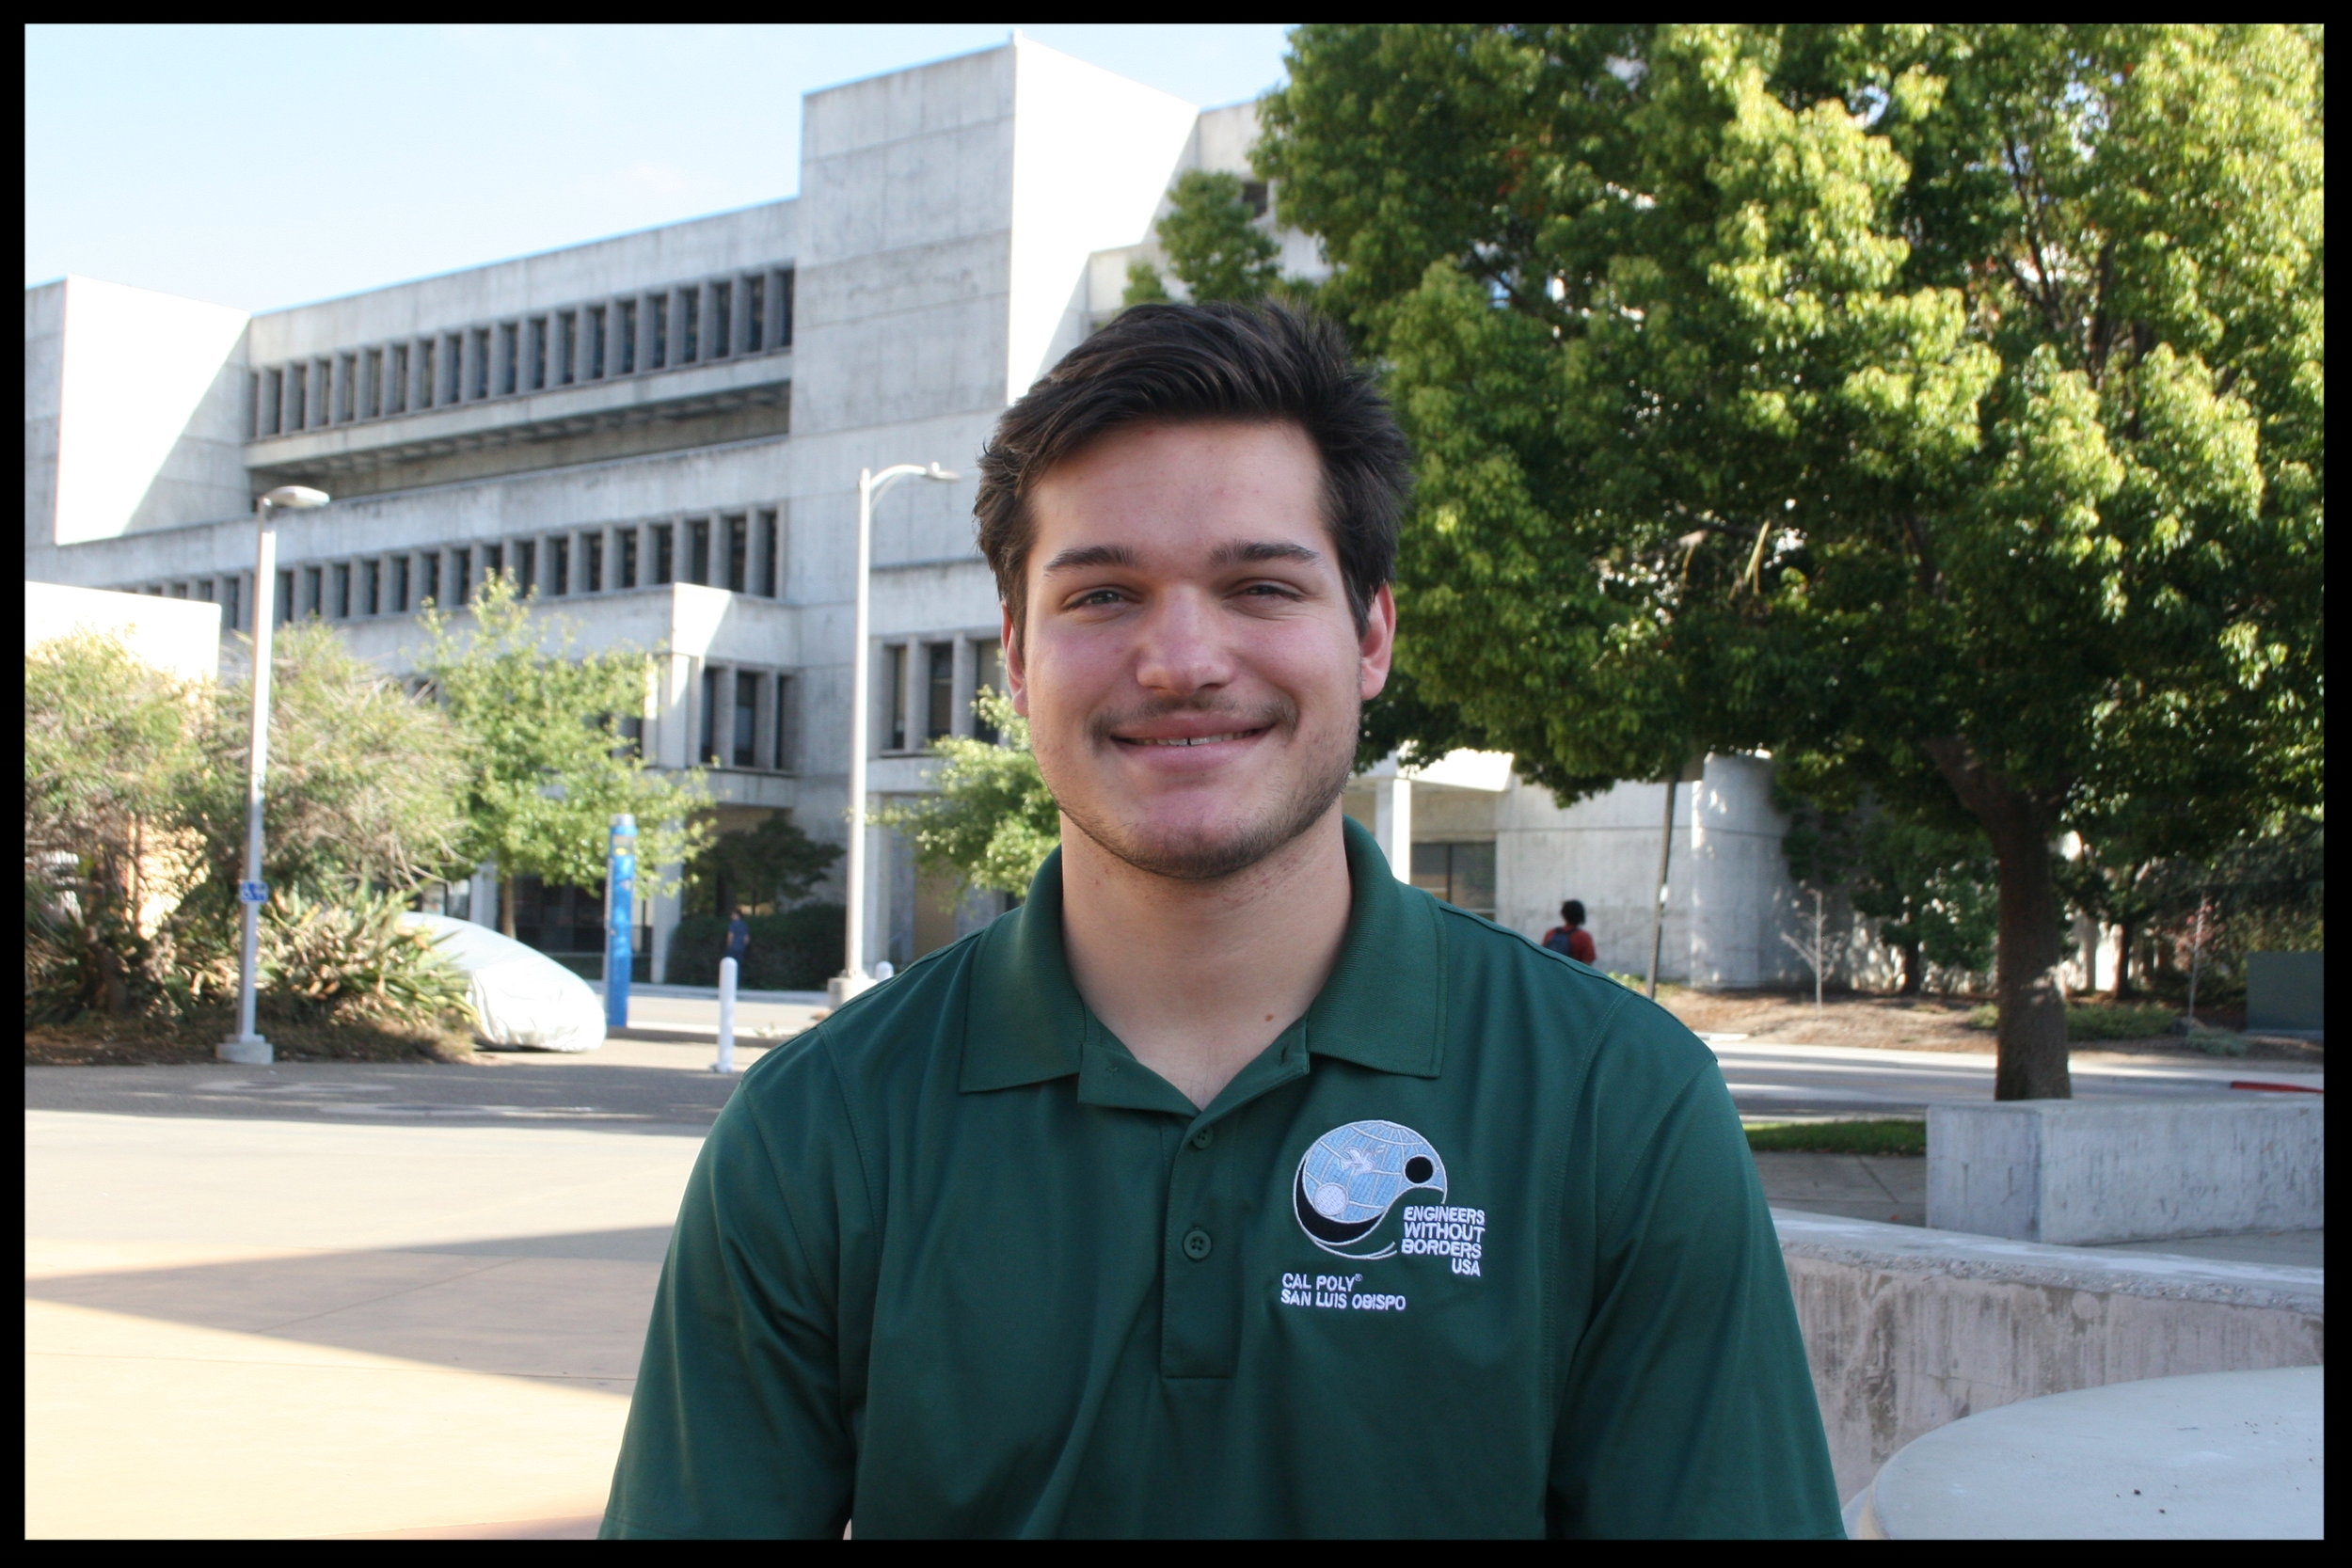 Brad Weeks - Membership Coordinator    Grad 2021 - Electrical Engineering   Brad Weeks is from San Diego, California. He spent much of his time in high school doing various local community service projects, and frequented Tijuana, Mexico to help build houses and facilities for the underprivileged. One of his passions is hobby electronics. This includes - Home networking, Audio-Circuitry design & construction, and Automation. His favorite part of EWB is working with the Local Projects team.